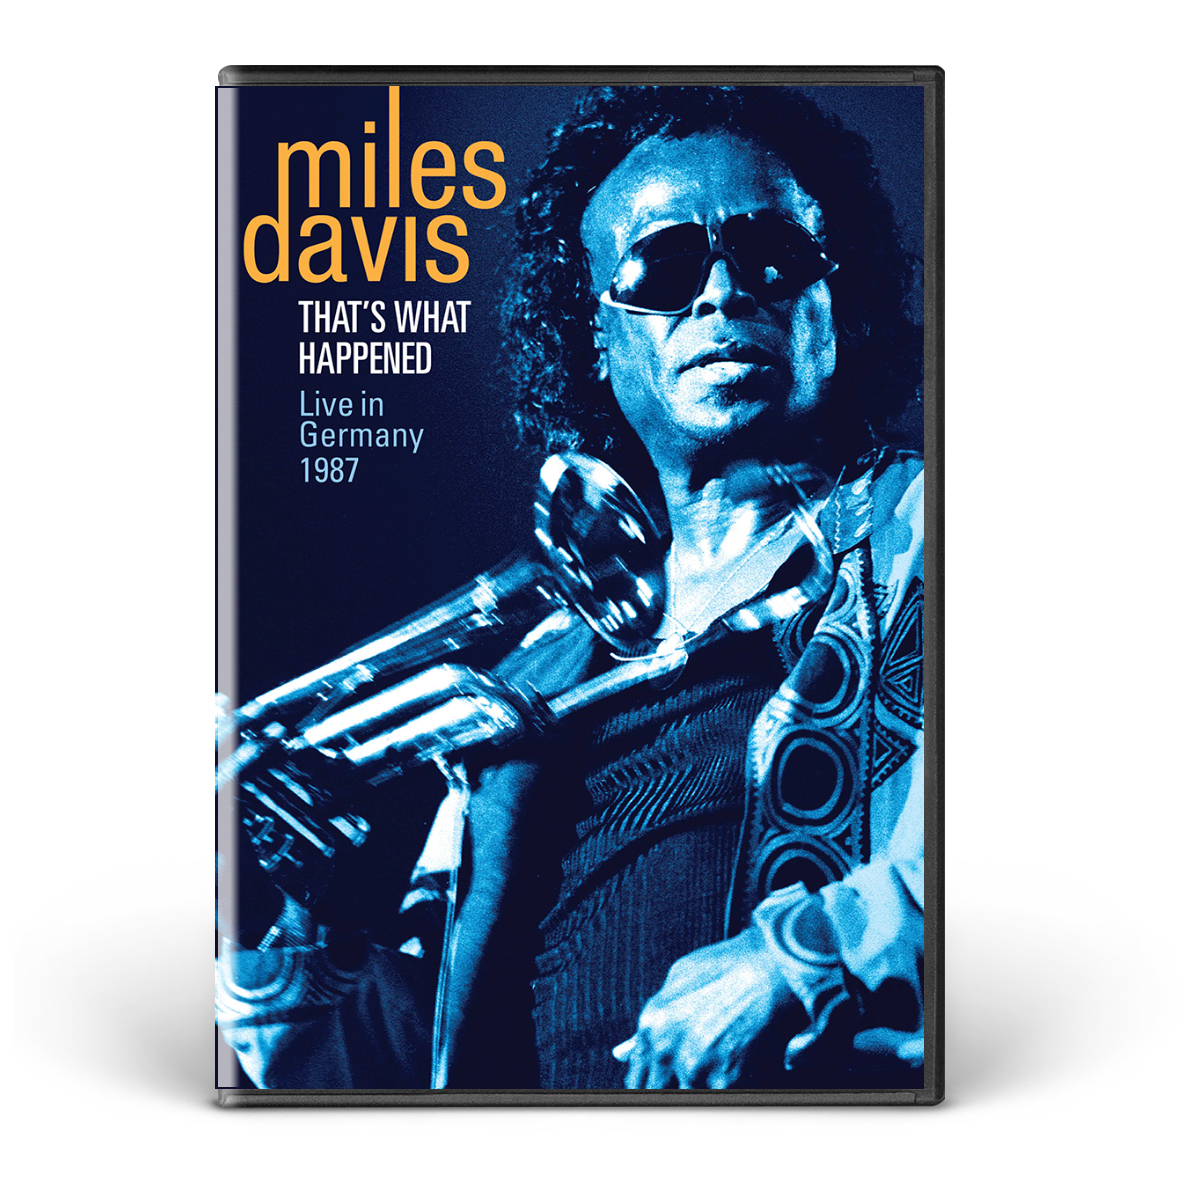 Miles Davis - That's What Happened - Live In Germany 1987 DVD